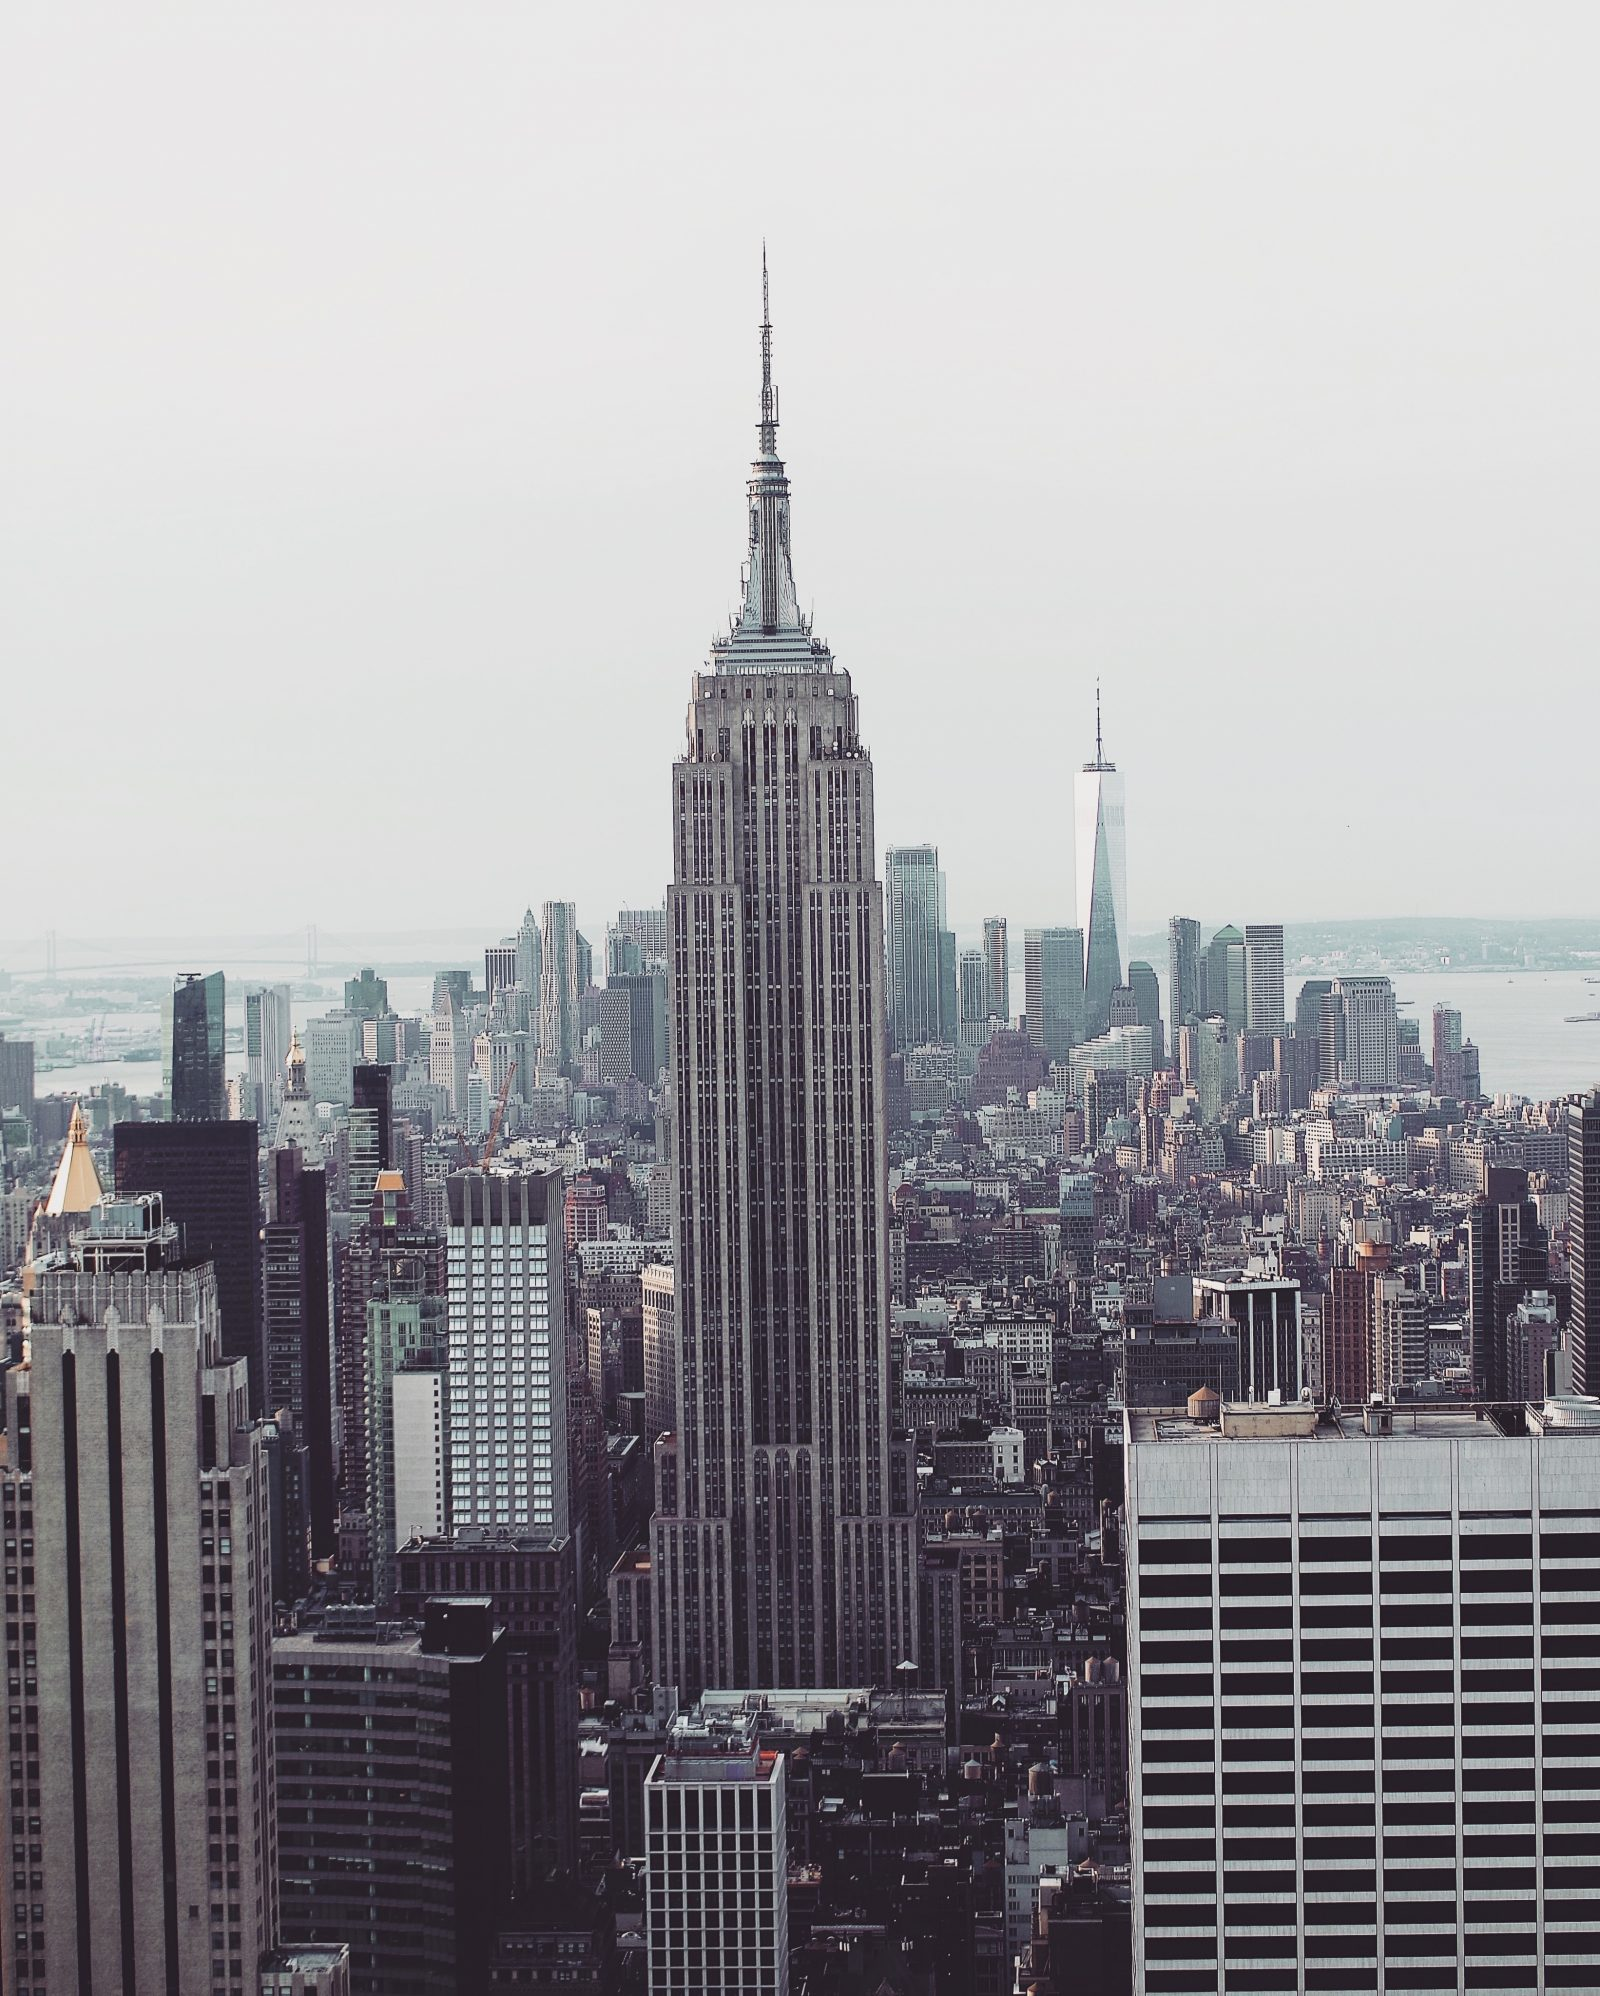 New York in 4 Days - Empire State Building